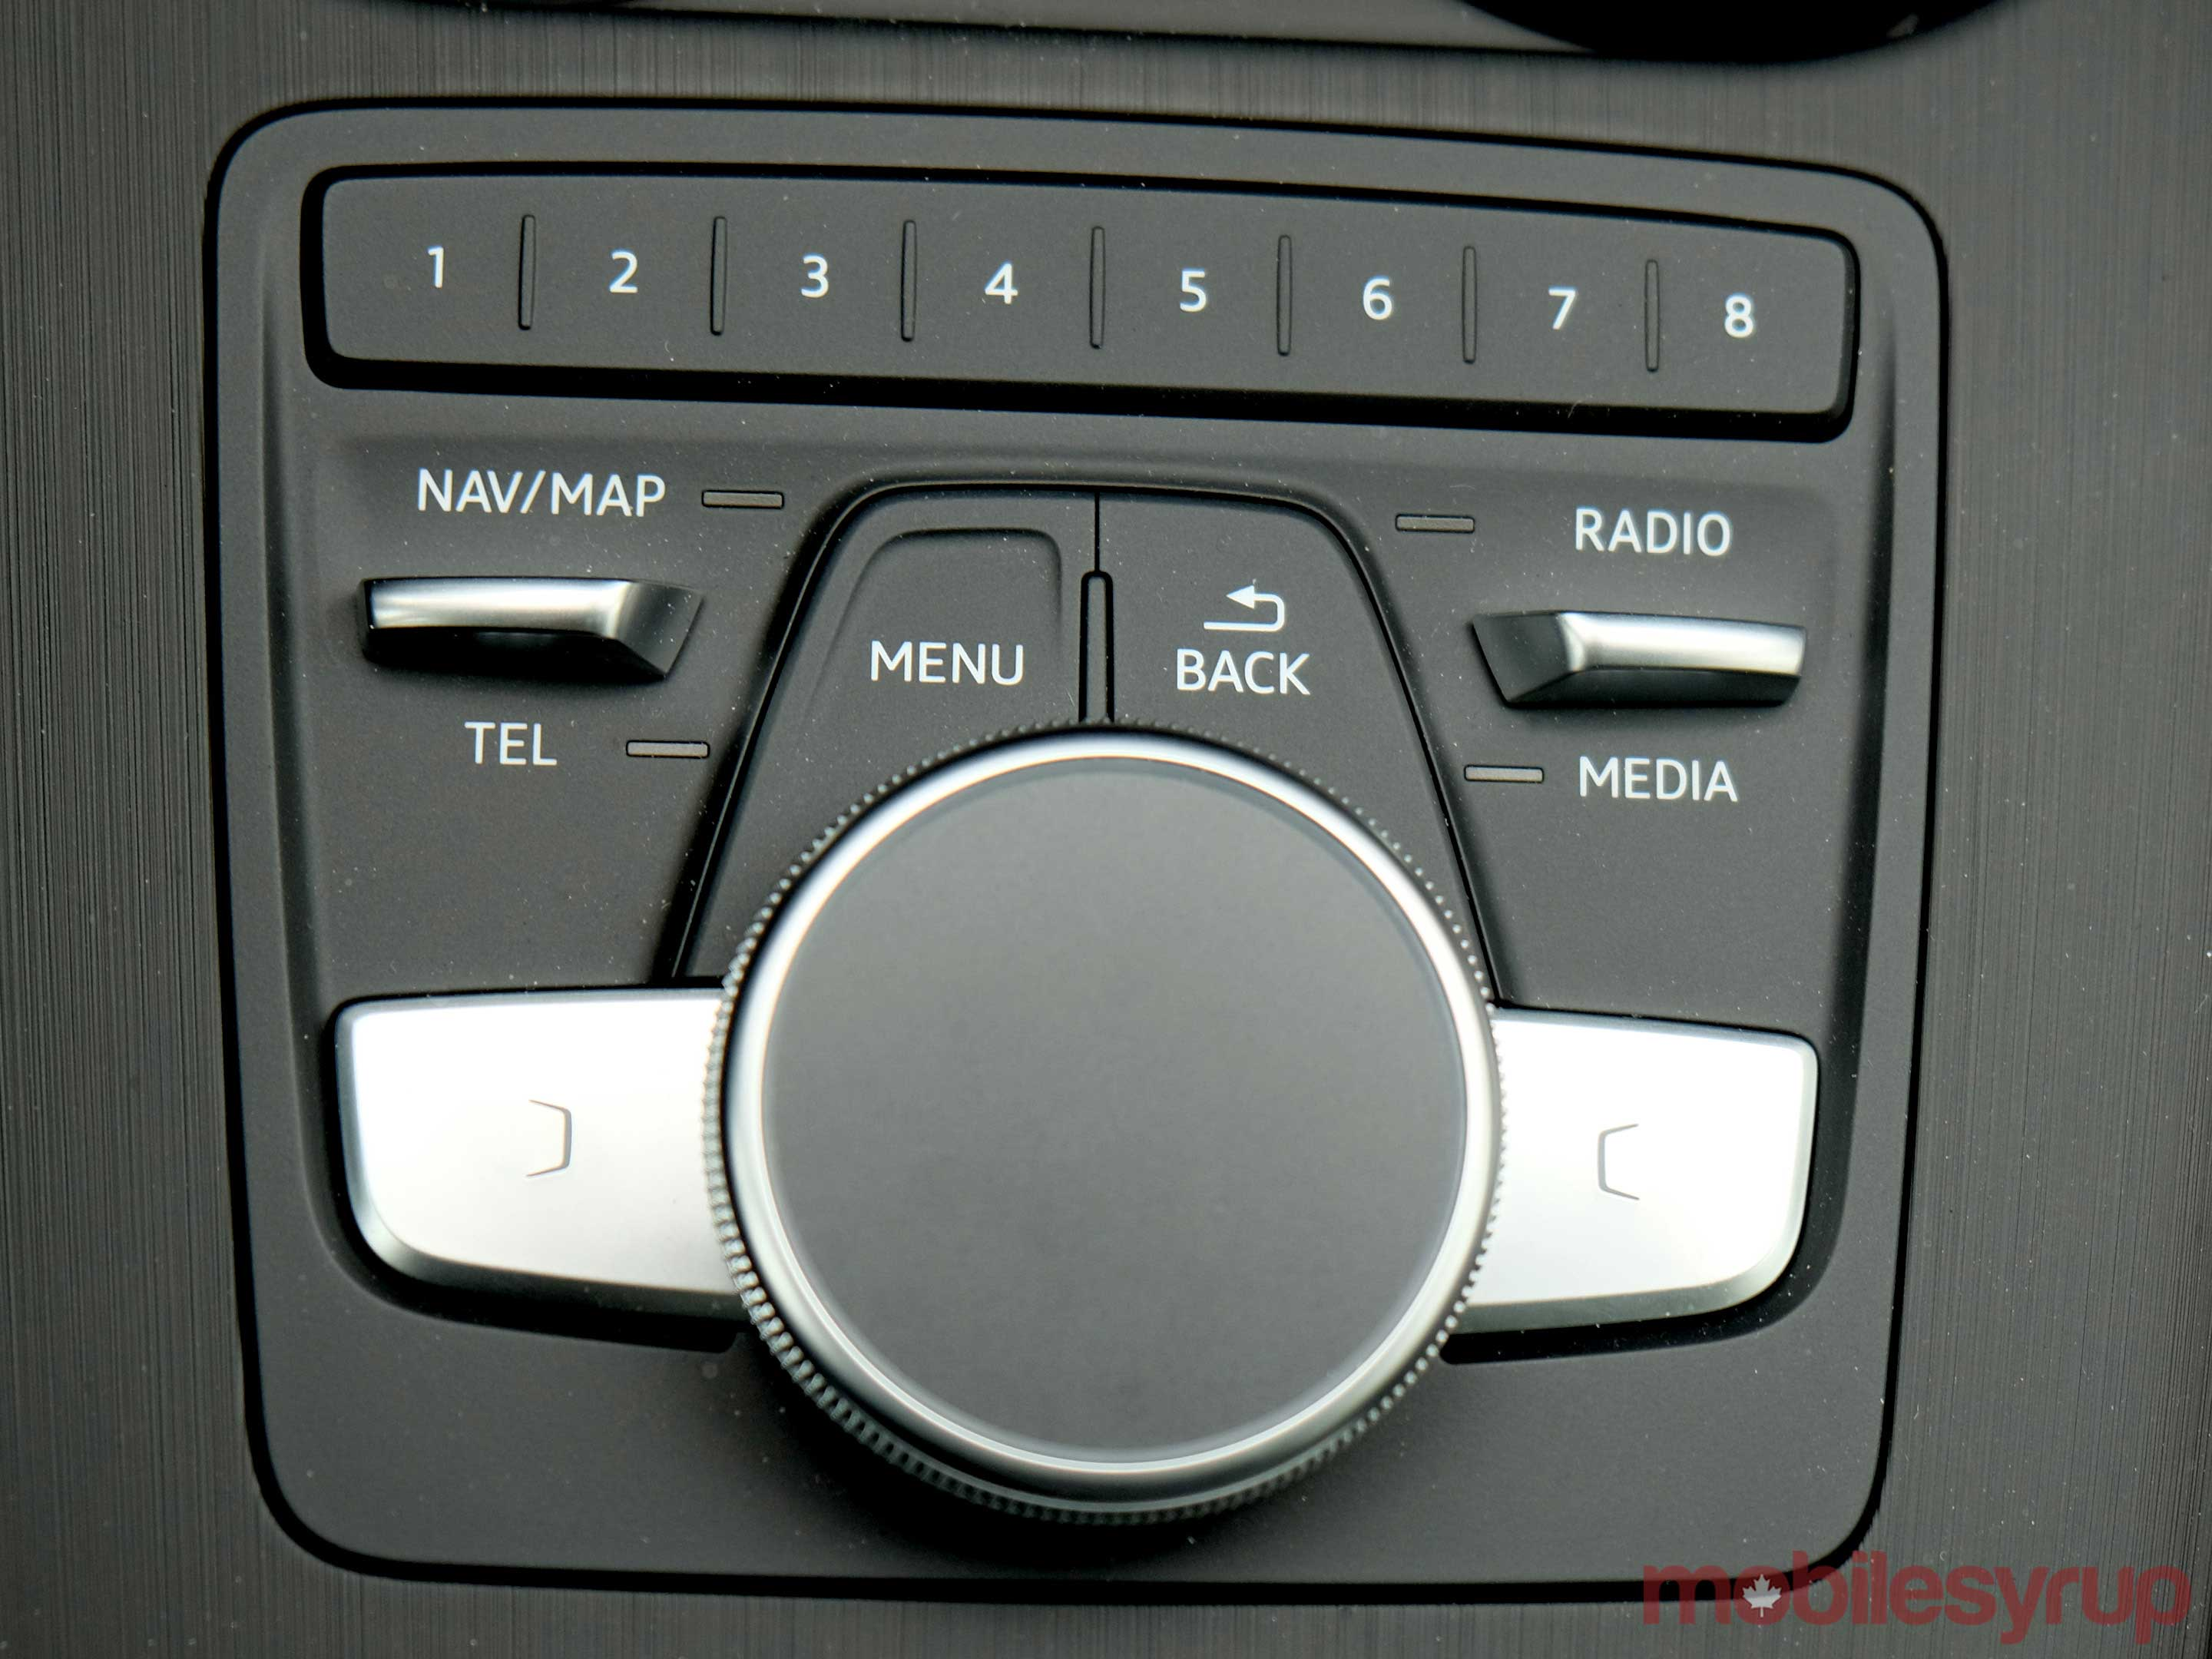 Audi MMI physical controls